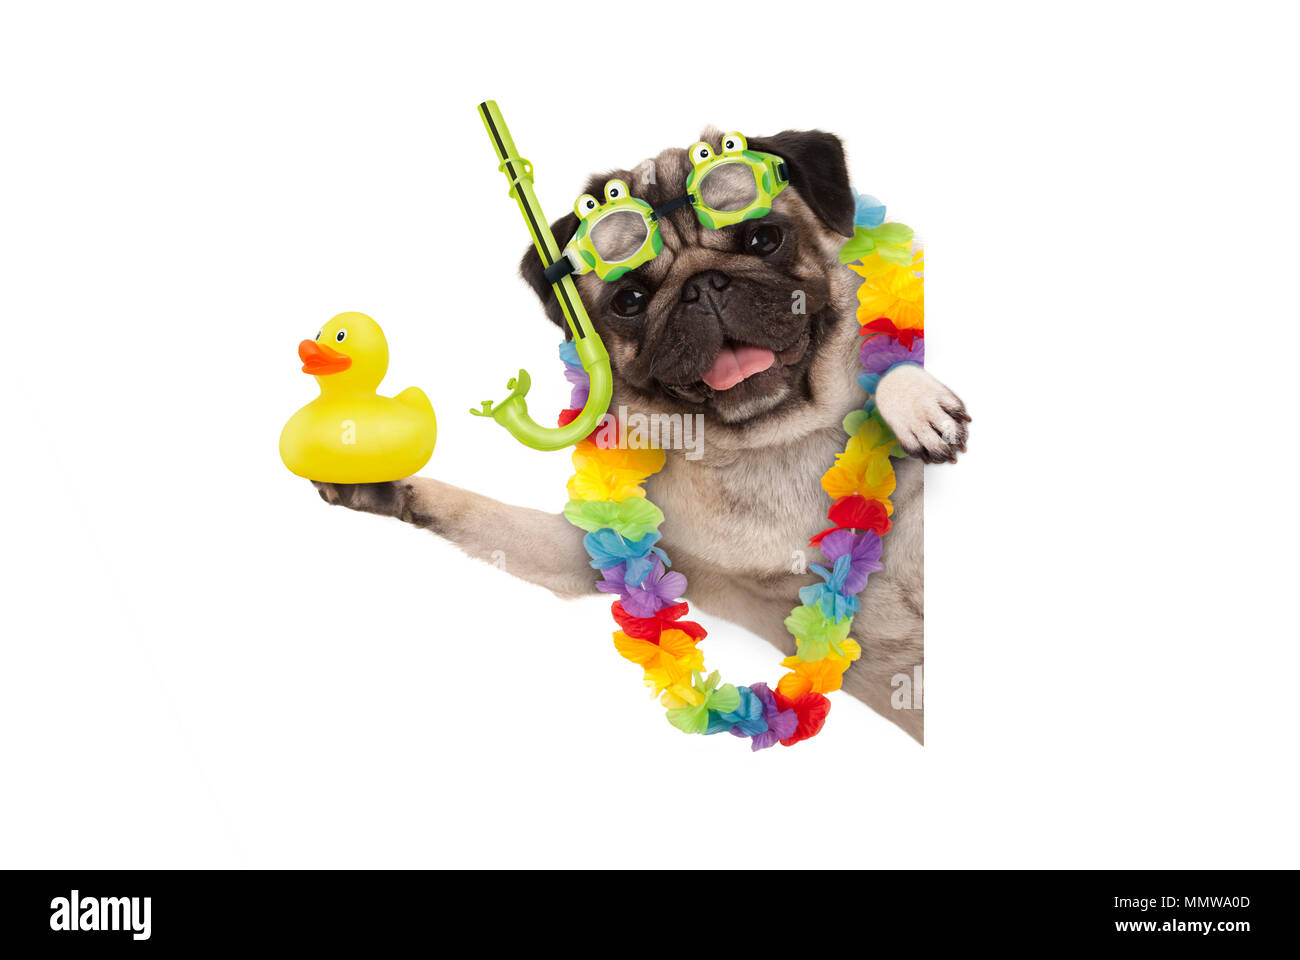 funny summer pug dog with hawaiian flower garland, snorkel and goggles, holding up yellow rubber ducky, isolated on white background - Stock Image